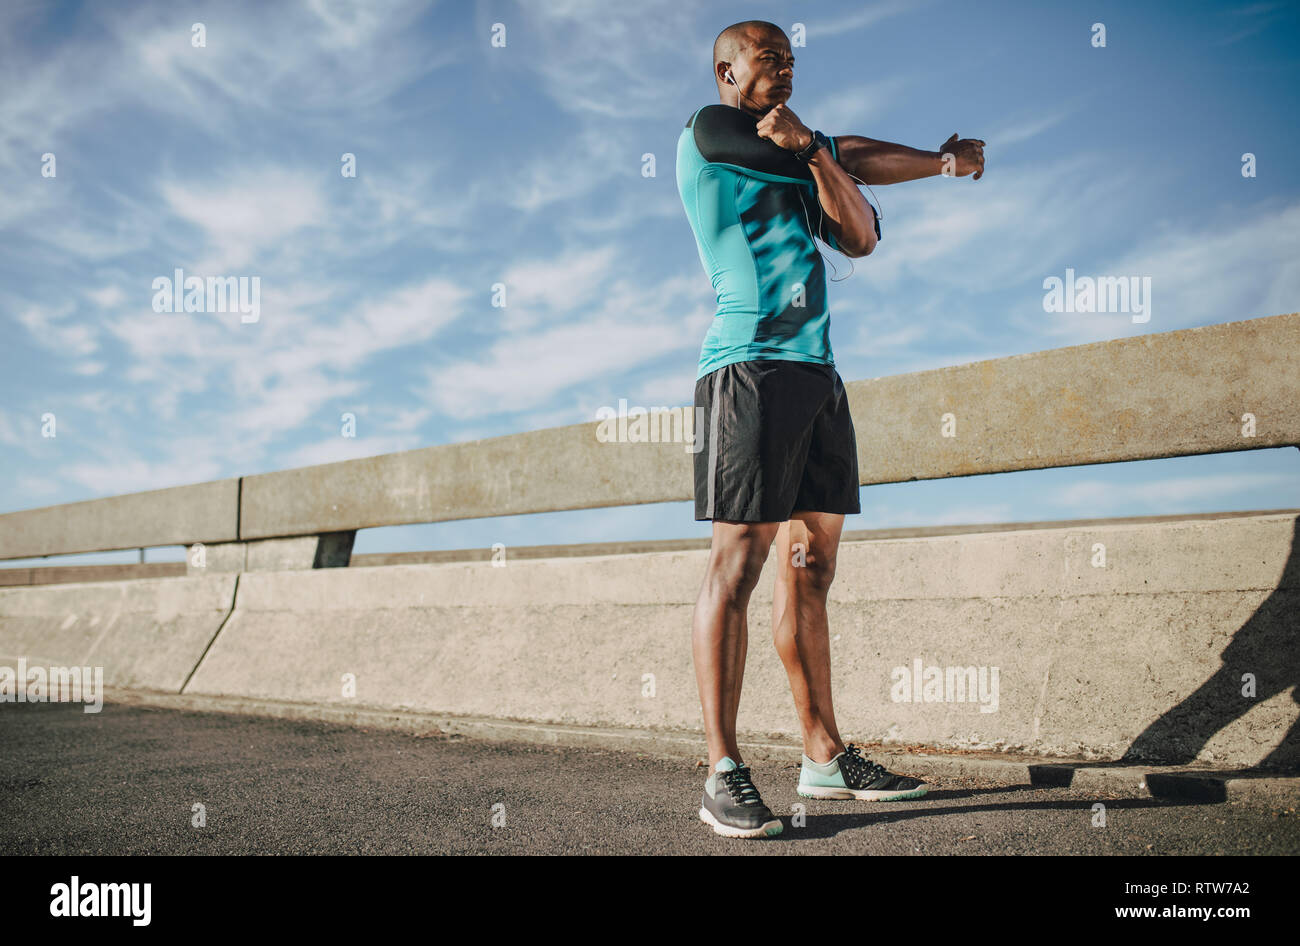 African american man in sportswear stretching his arms. Male athlete warming up before a run in morning in city. - Stock Image